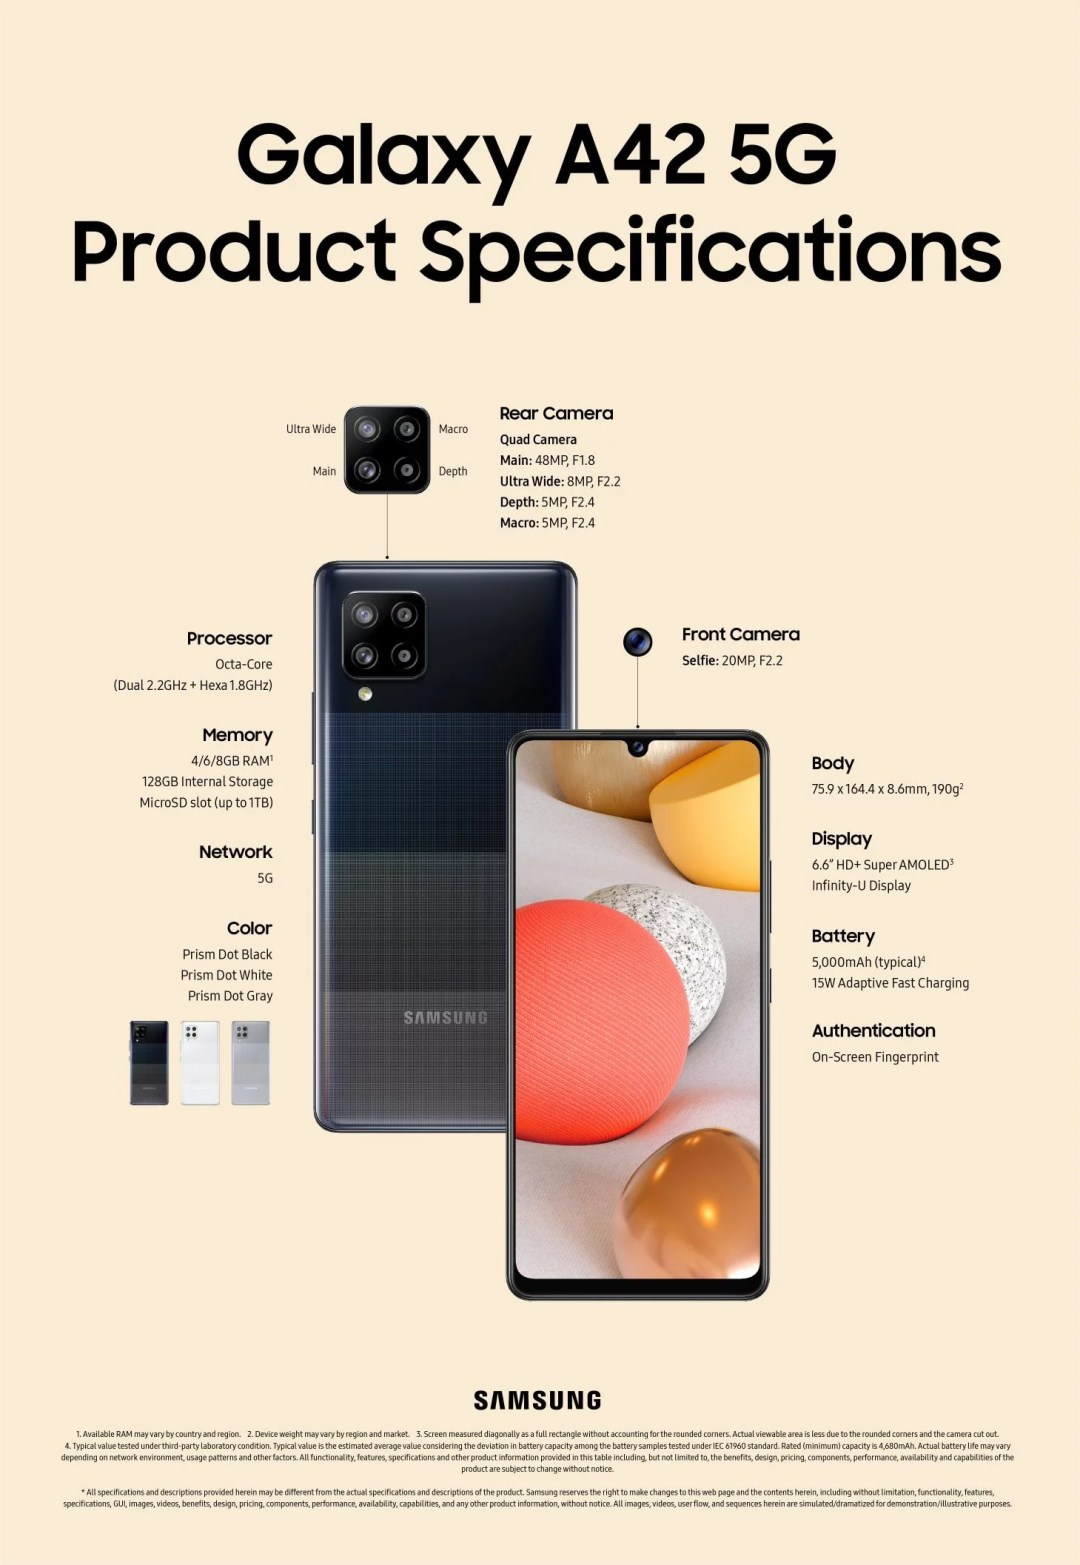 Galaxy A42 5G Specifications